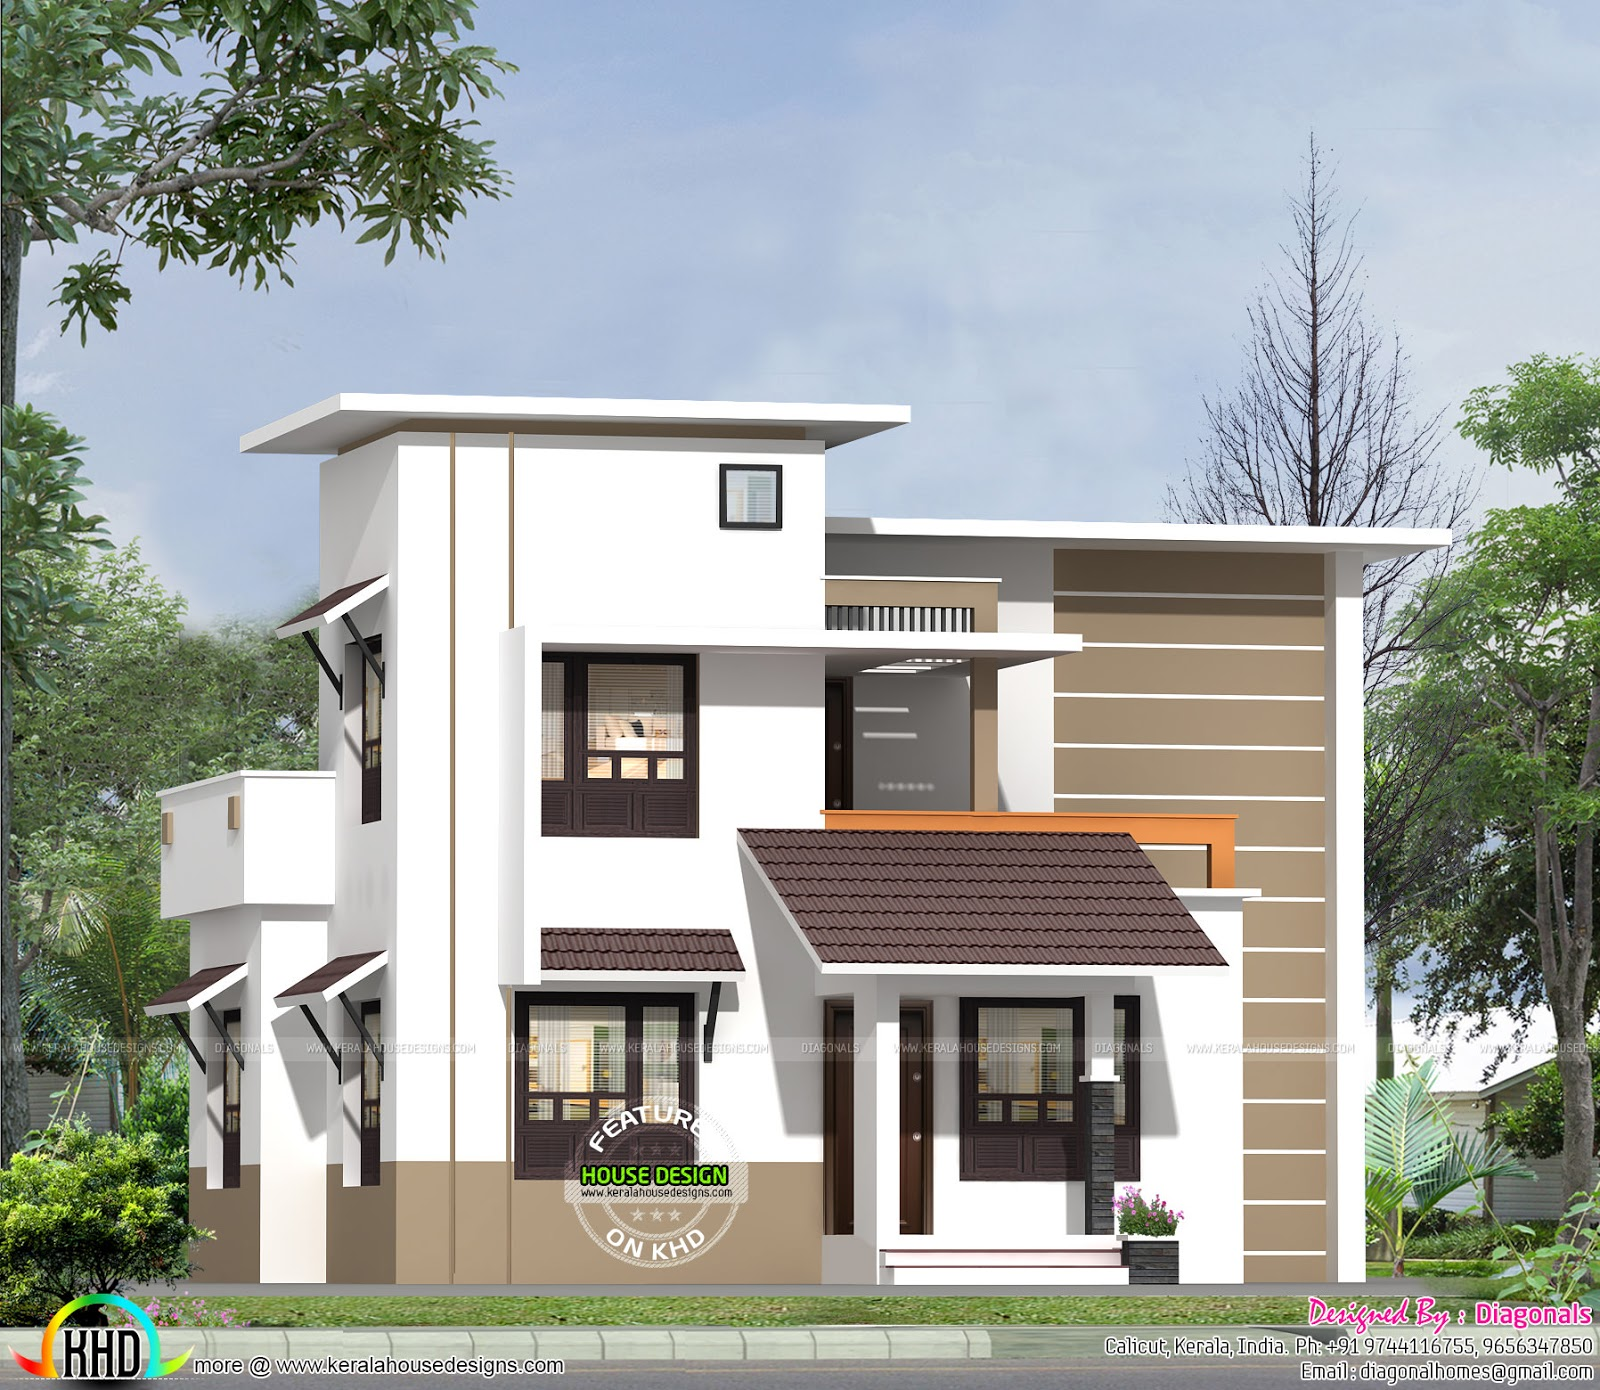 Affordable low cost home kerala home design and floor plans for Low cost small house plans